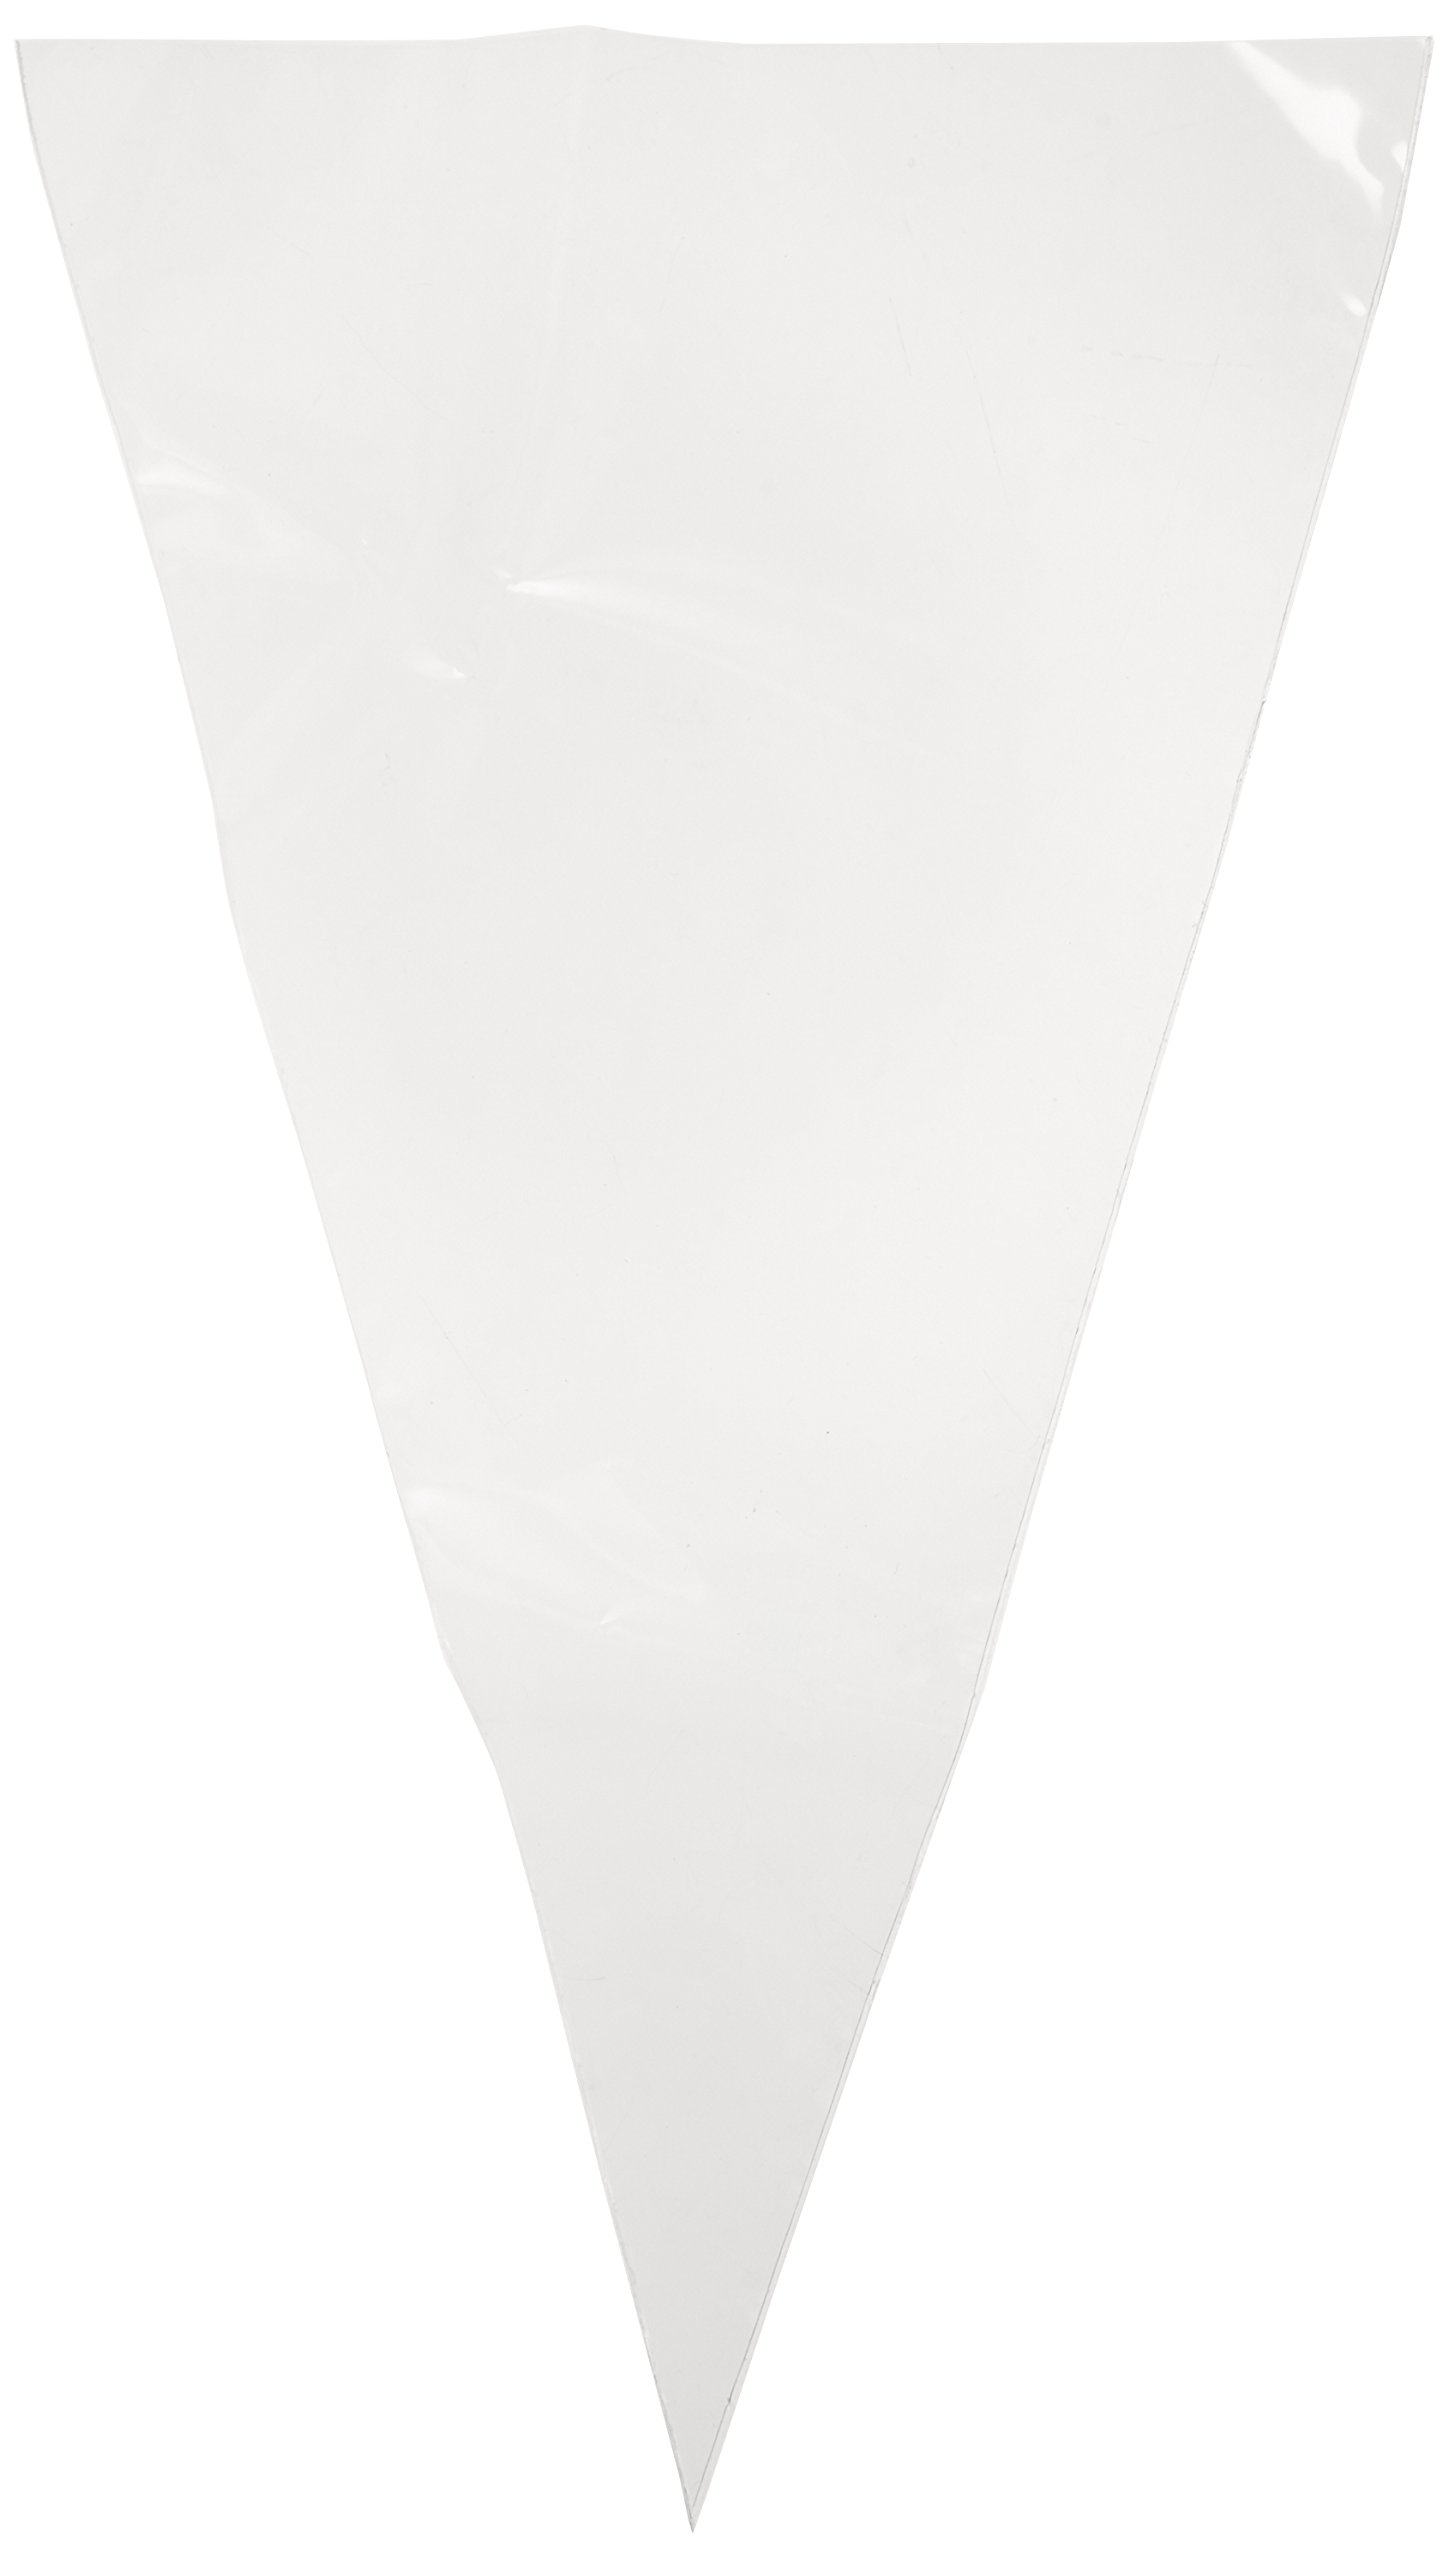 Ateco 468 Clear Disposable Decorating Bags, 18-Inch, Pack of 10, Extra Strong, Made in USA